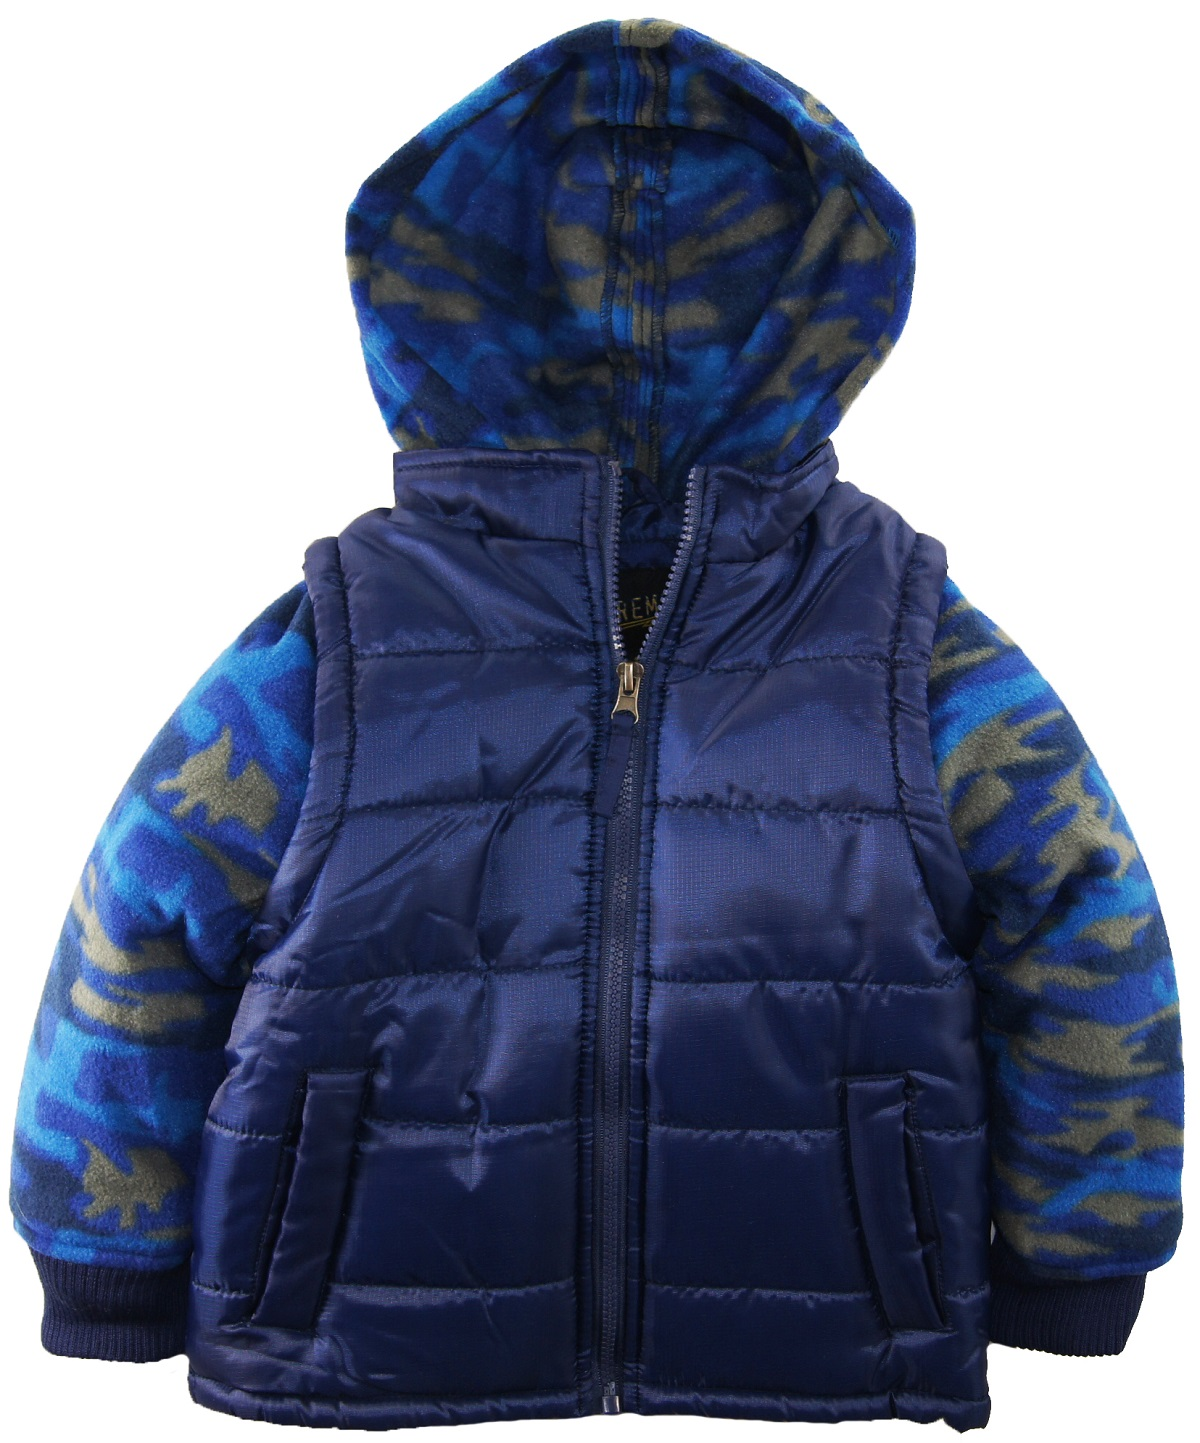 iXtreme Little Boys 4-7 Camo Puffer Hooded Jacket at Sears.com